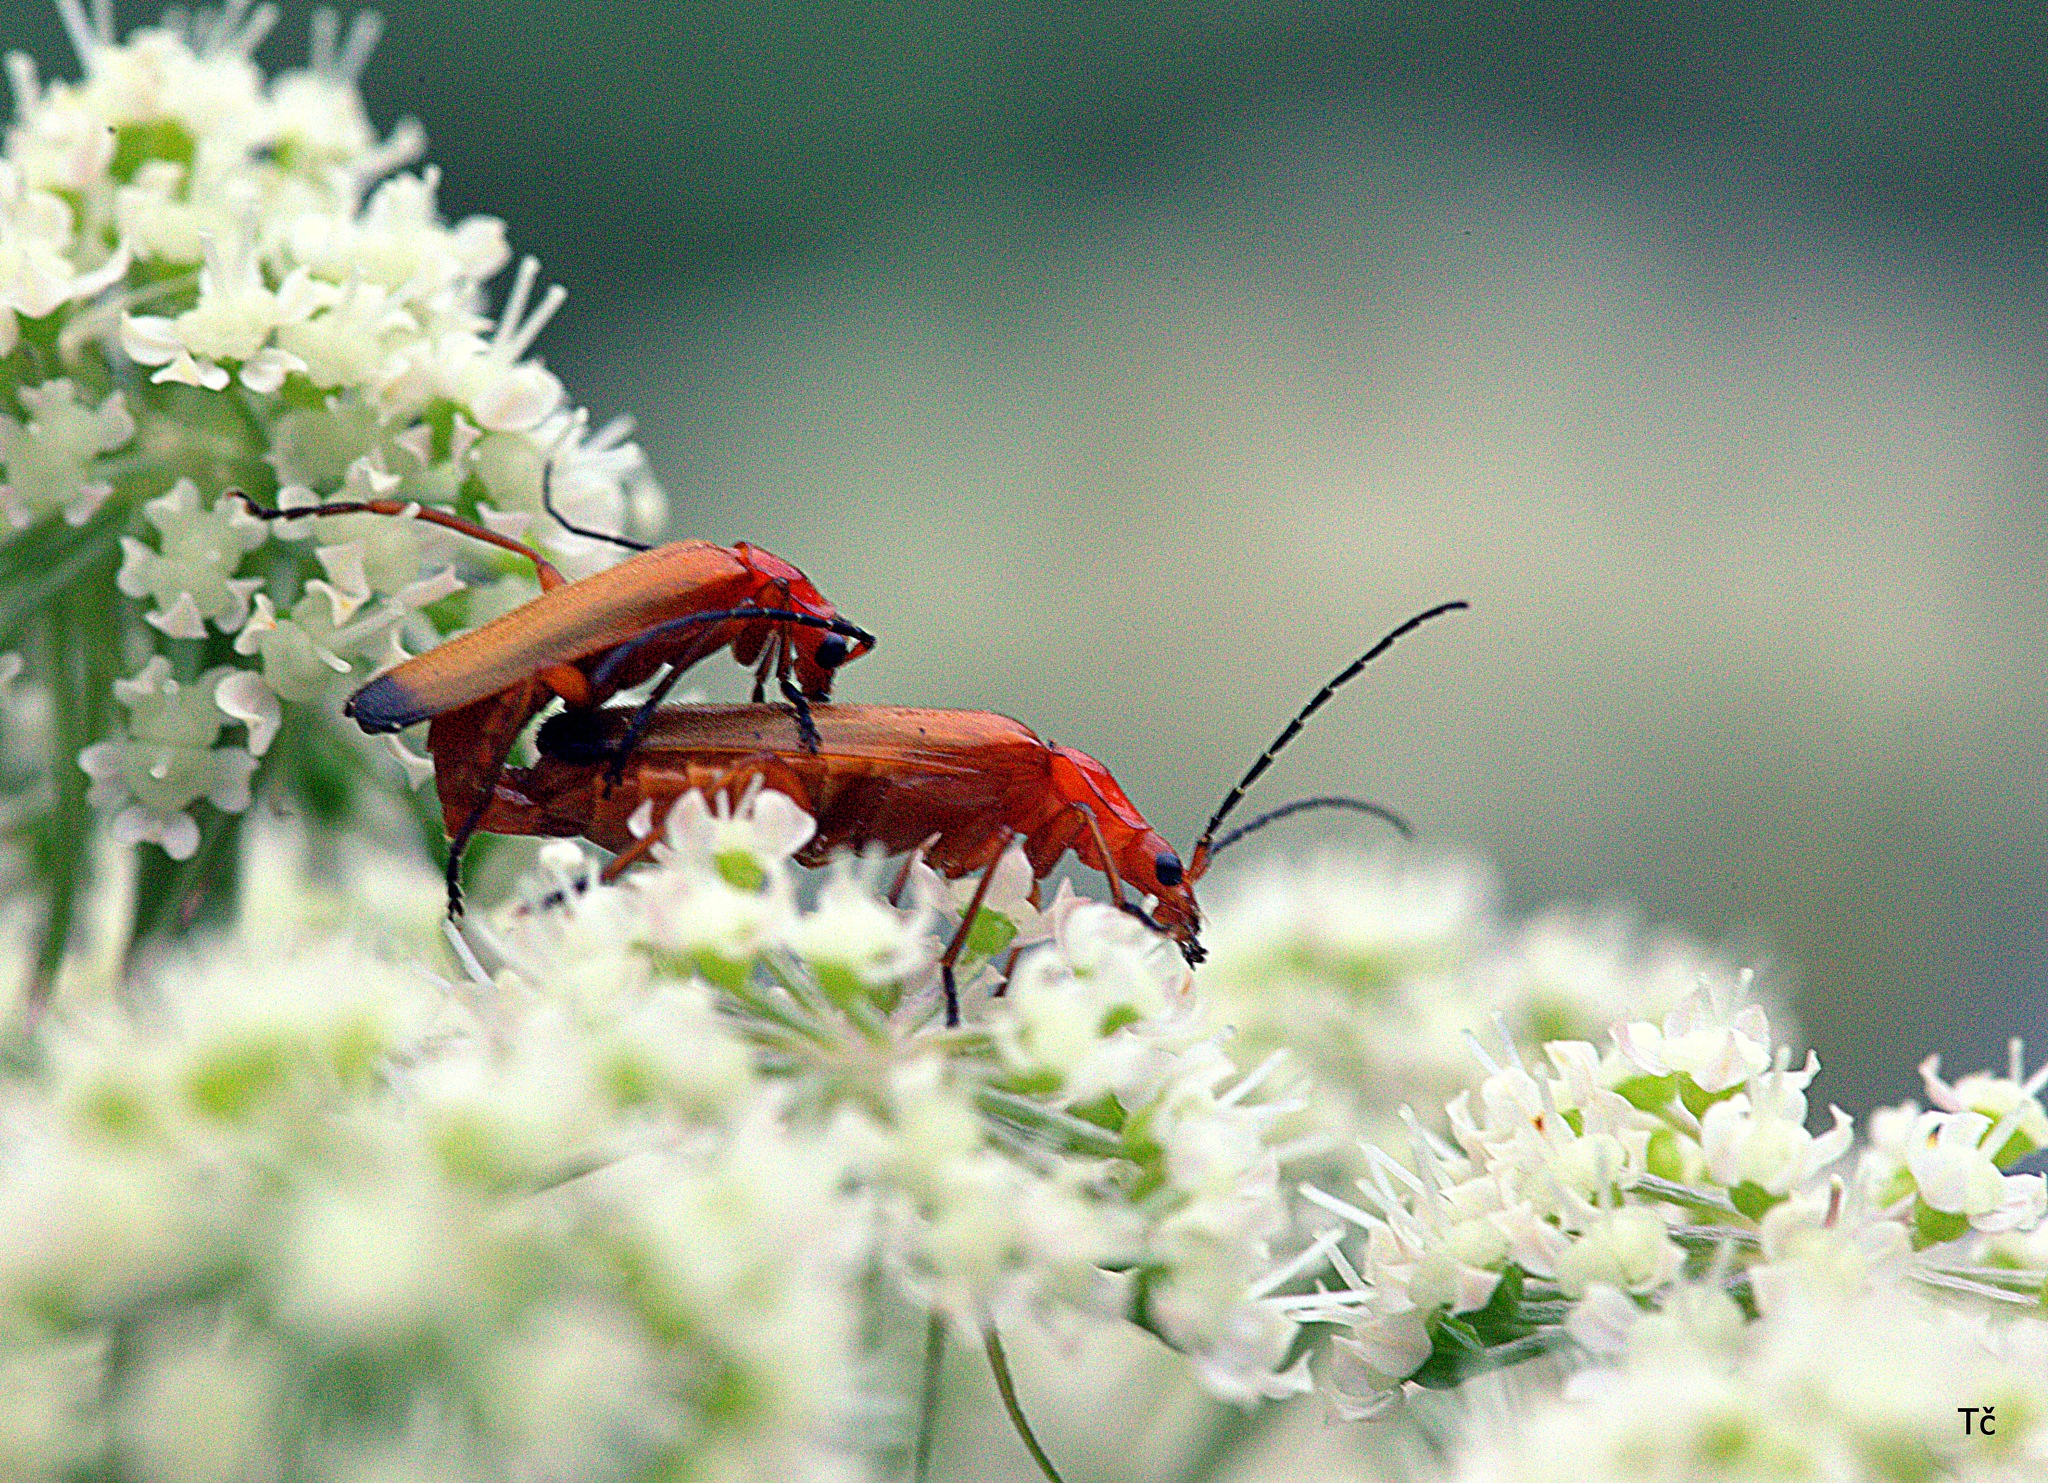 Longhorn beetle obviously take good care of themselves by leopold.brzin